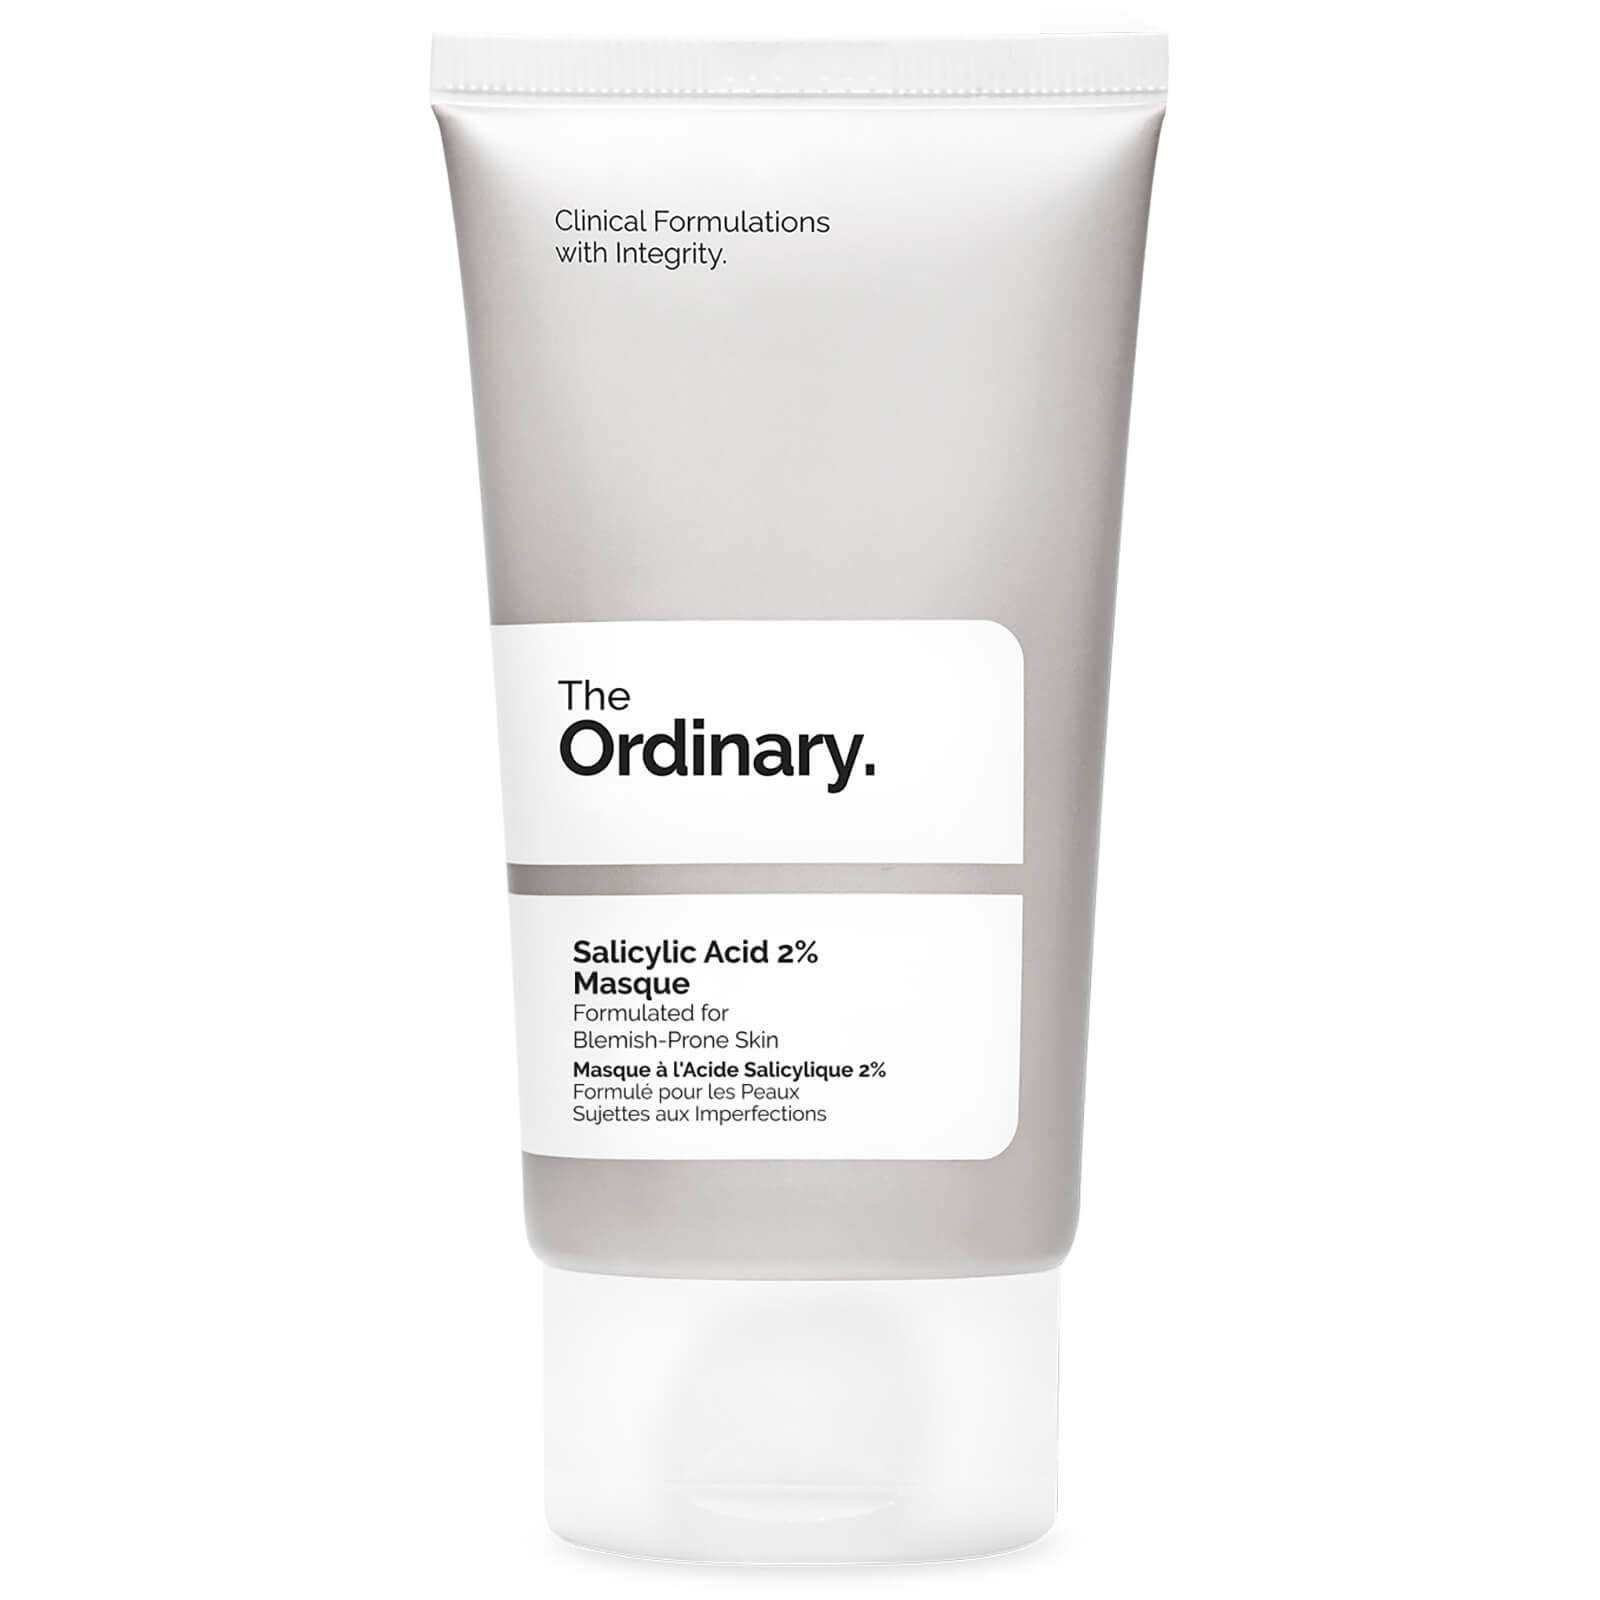 The Ordinary Salicylic Acid 2% Masque for Acne review, part of my regimen for blemish-prone skin.